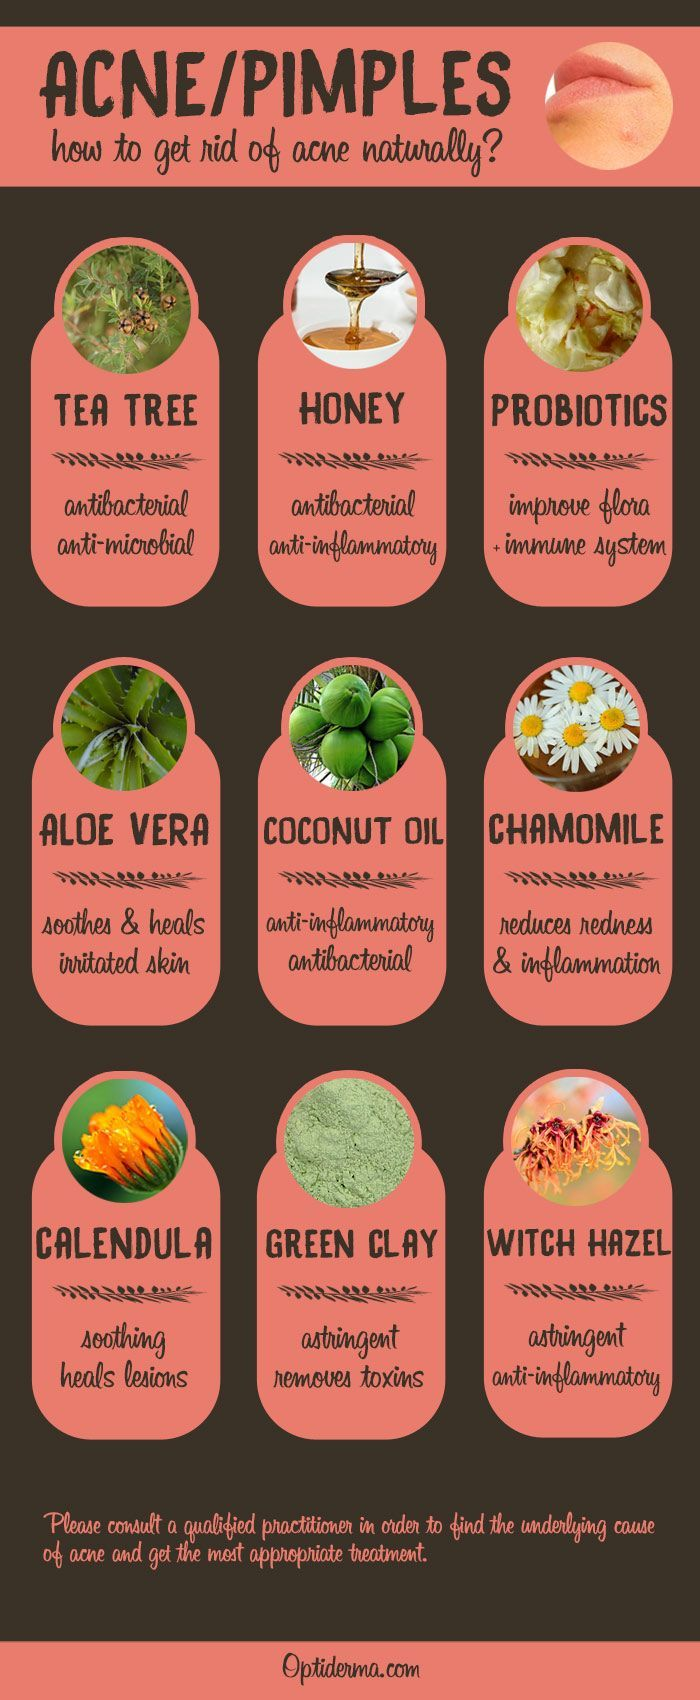 Acne The Best Natural Remedies for Acne & Pimples (Infographic). Try Tea Tree essent...